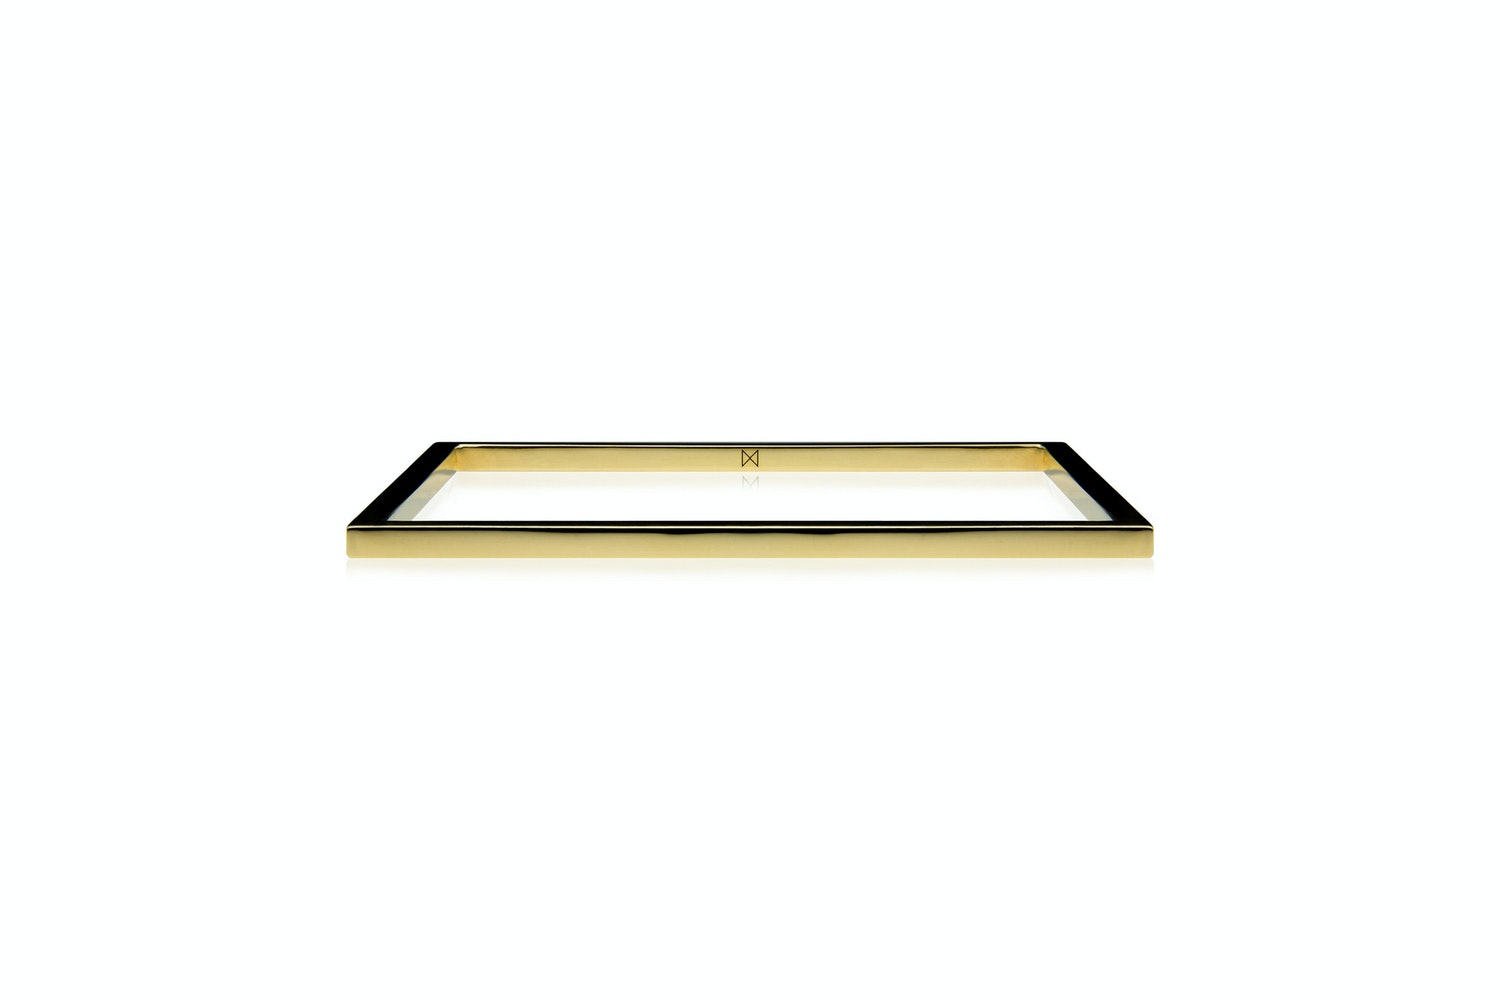 Square Bangle - Polished Brass by Minimalux